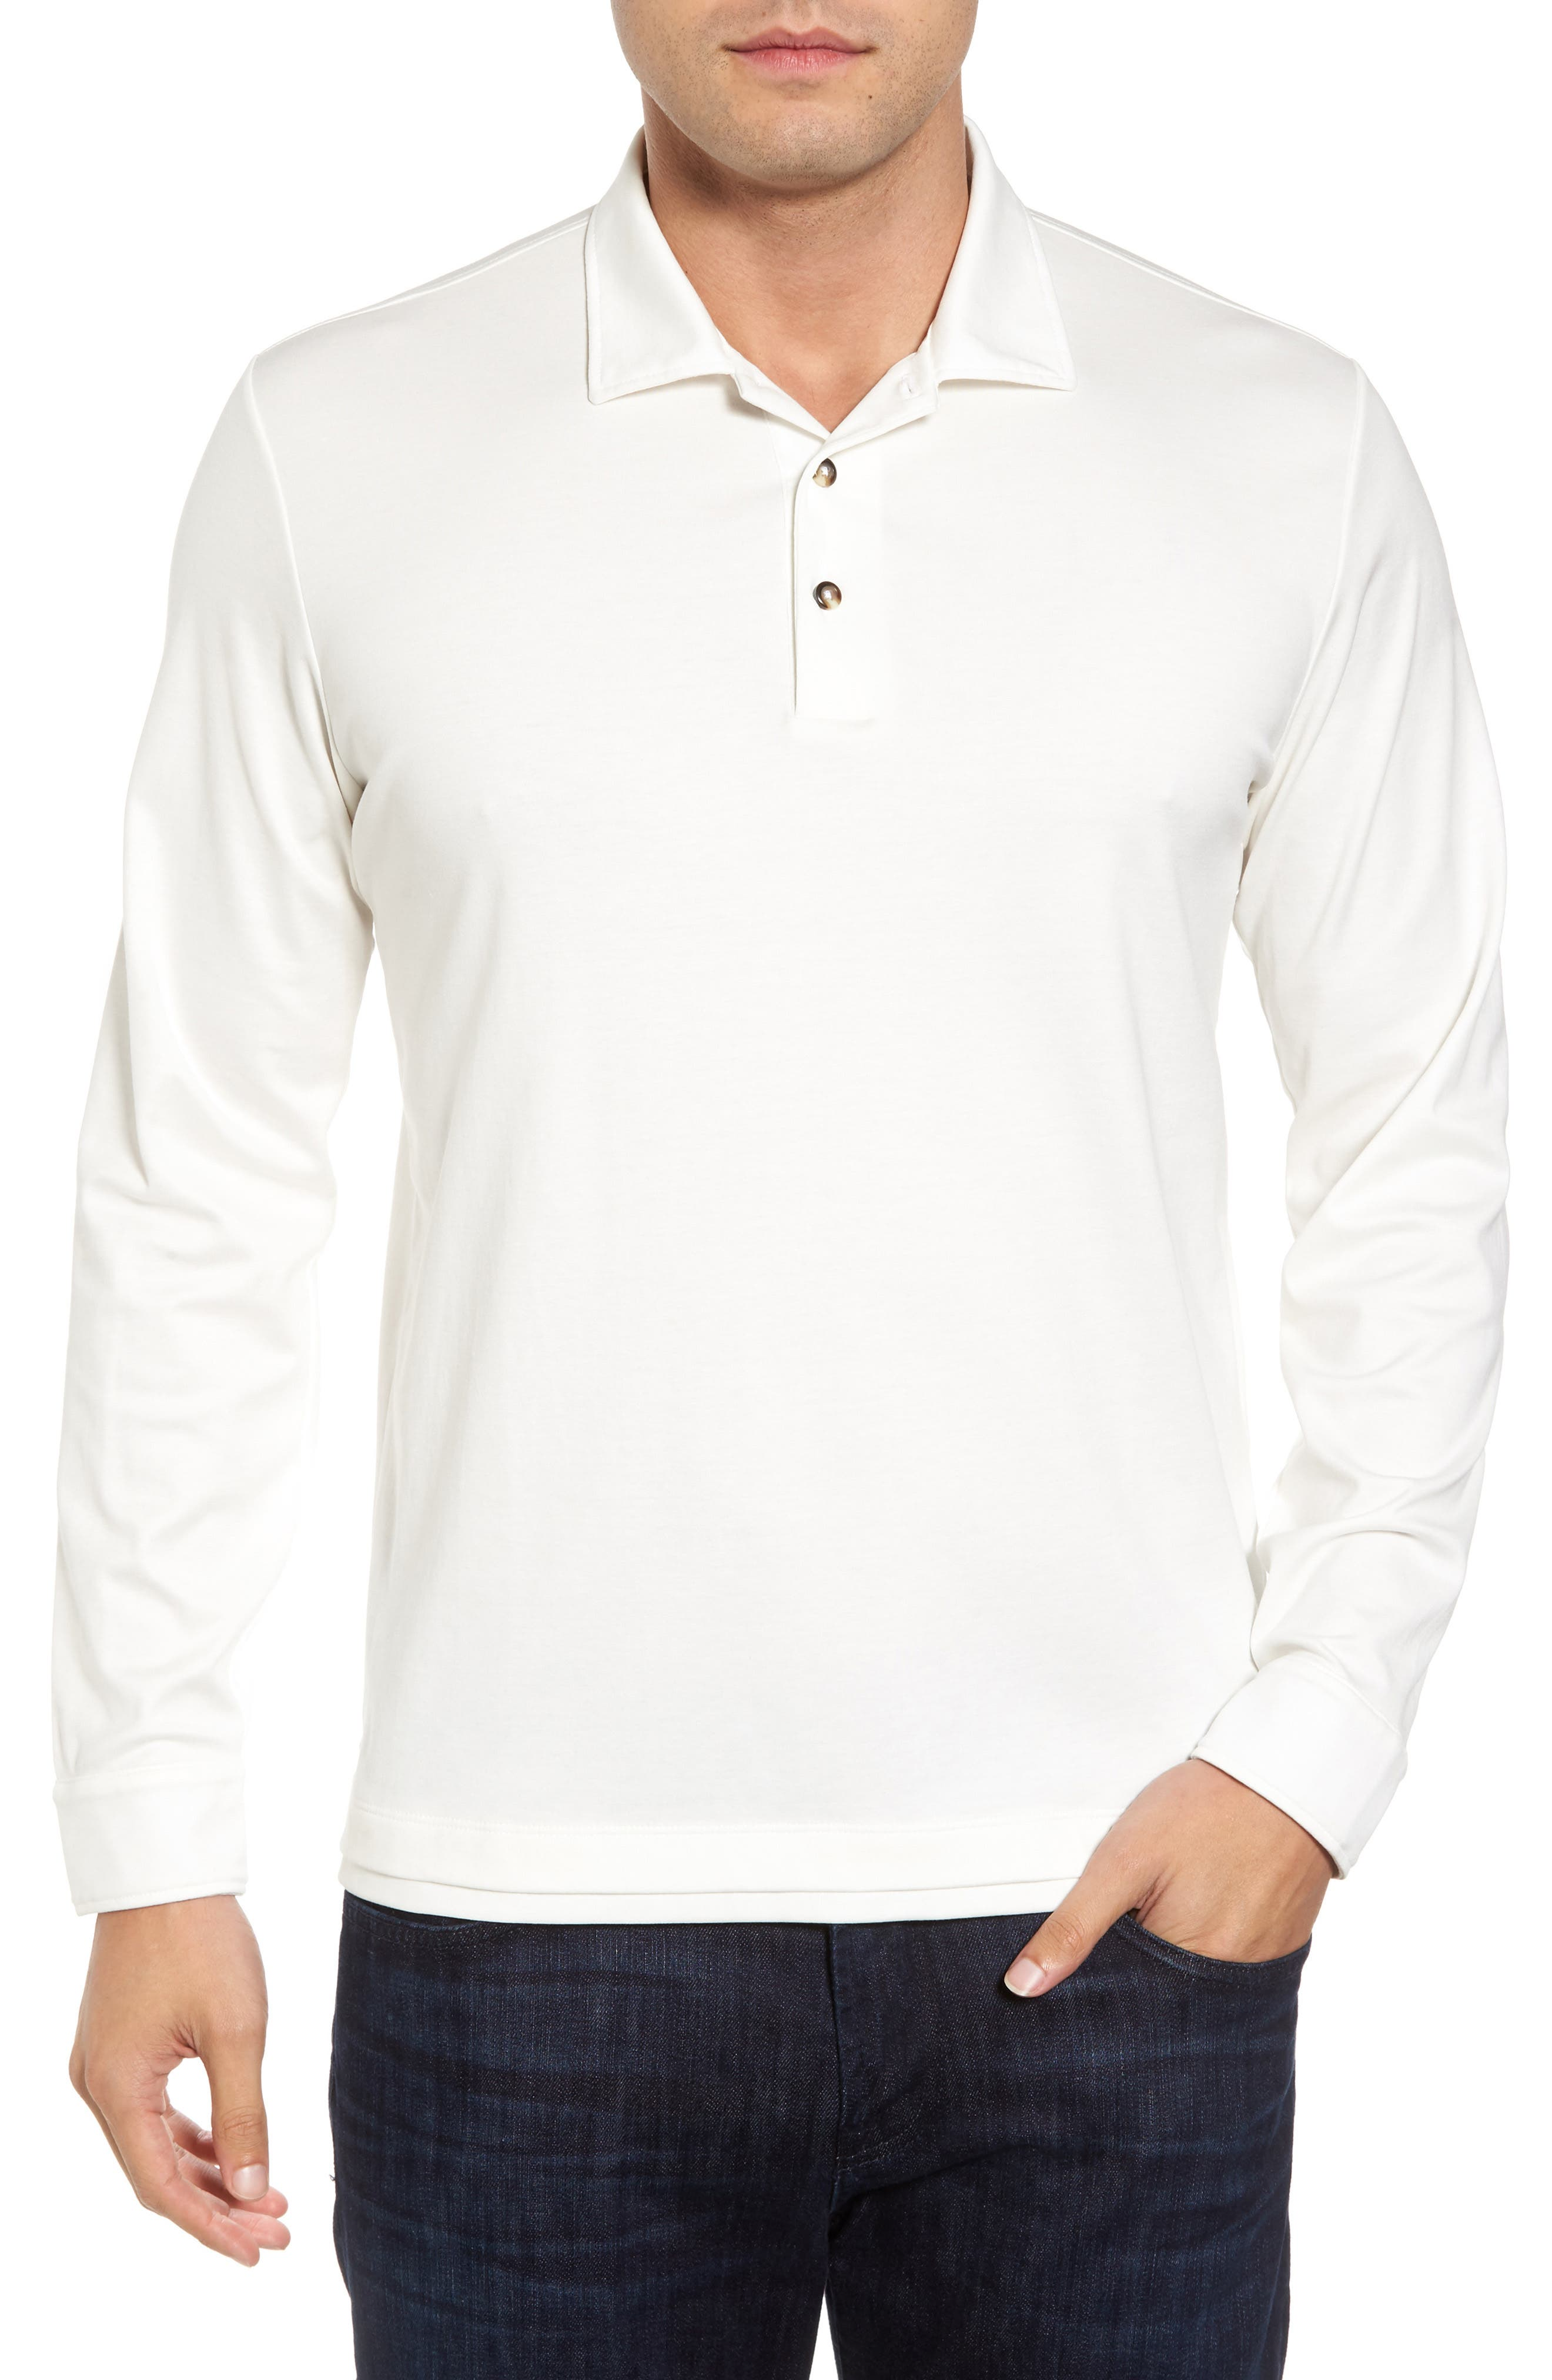 Interlock Polo,                         Main,                         color, White